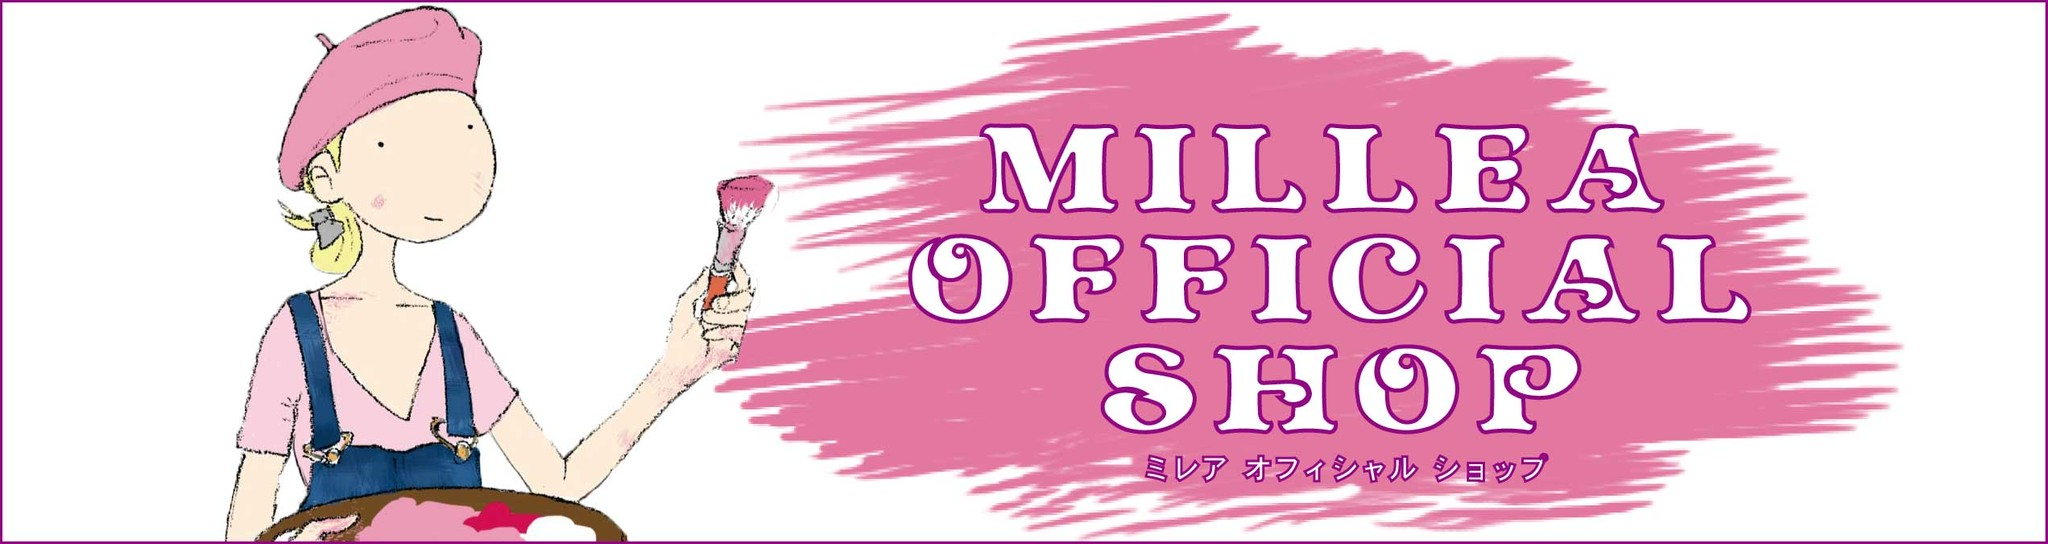 MILLEA OFFICIAL SHOP